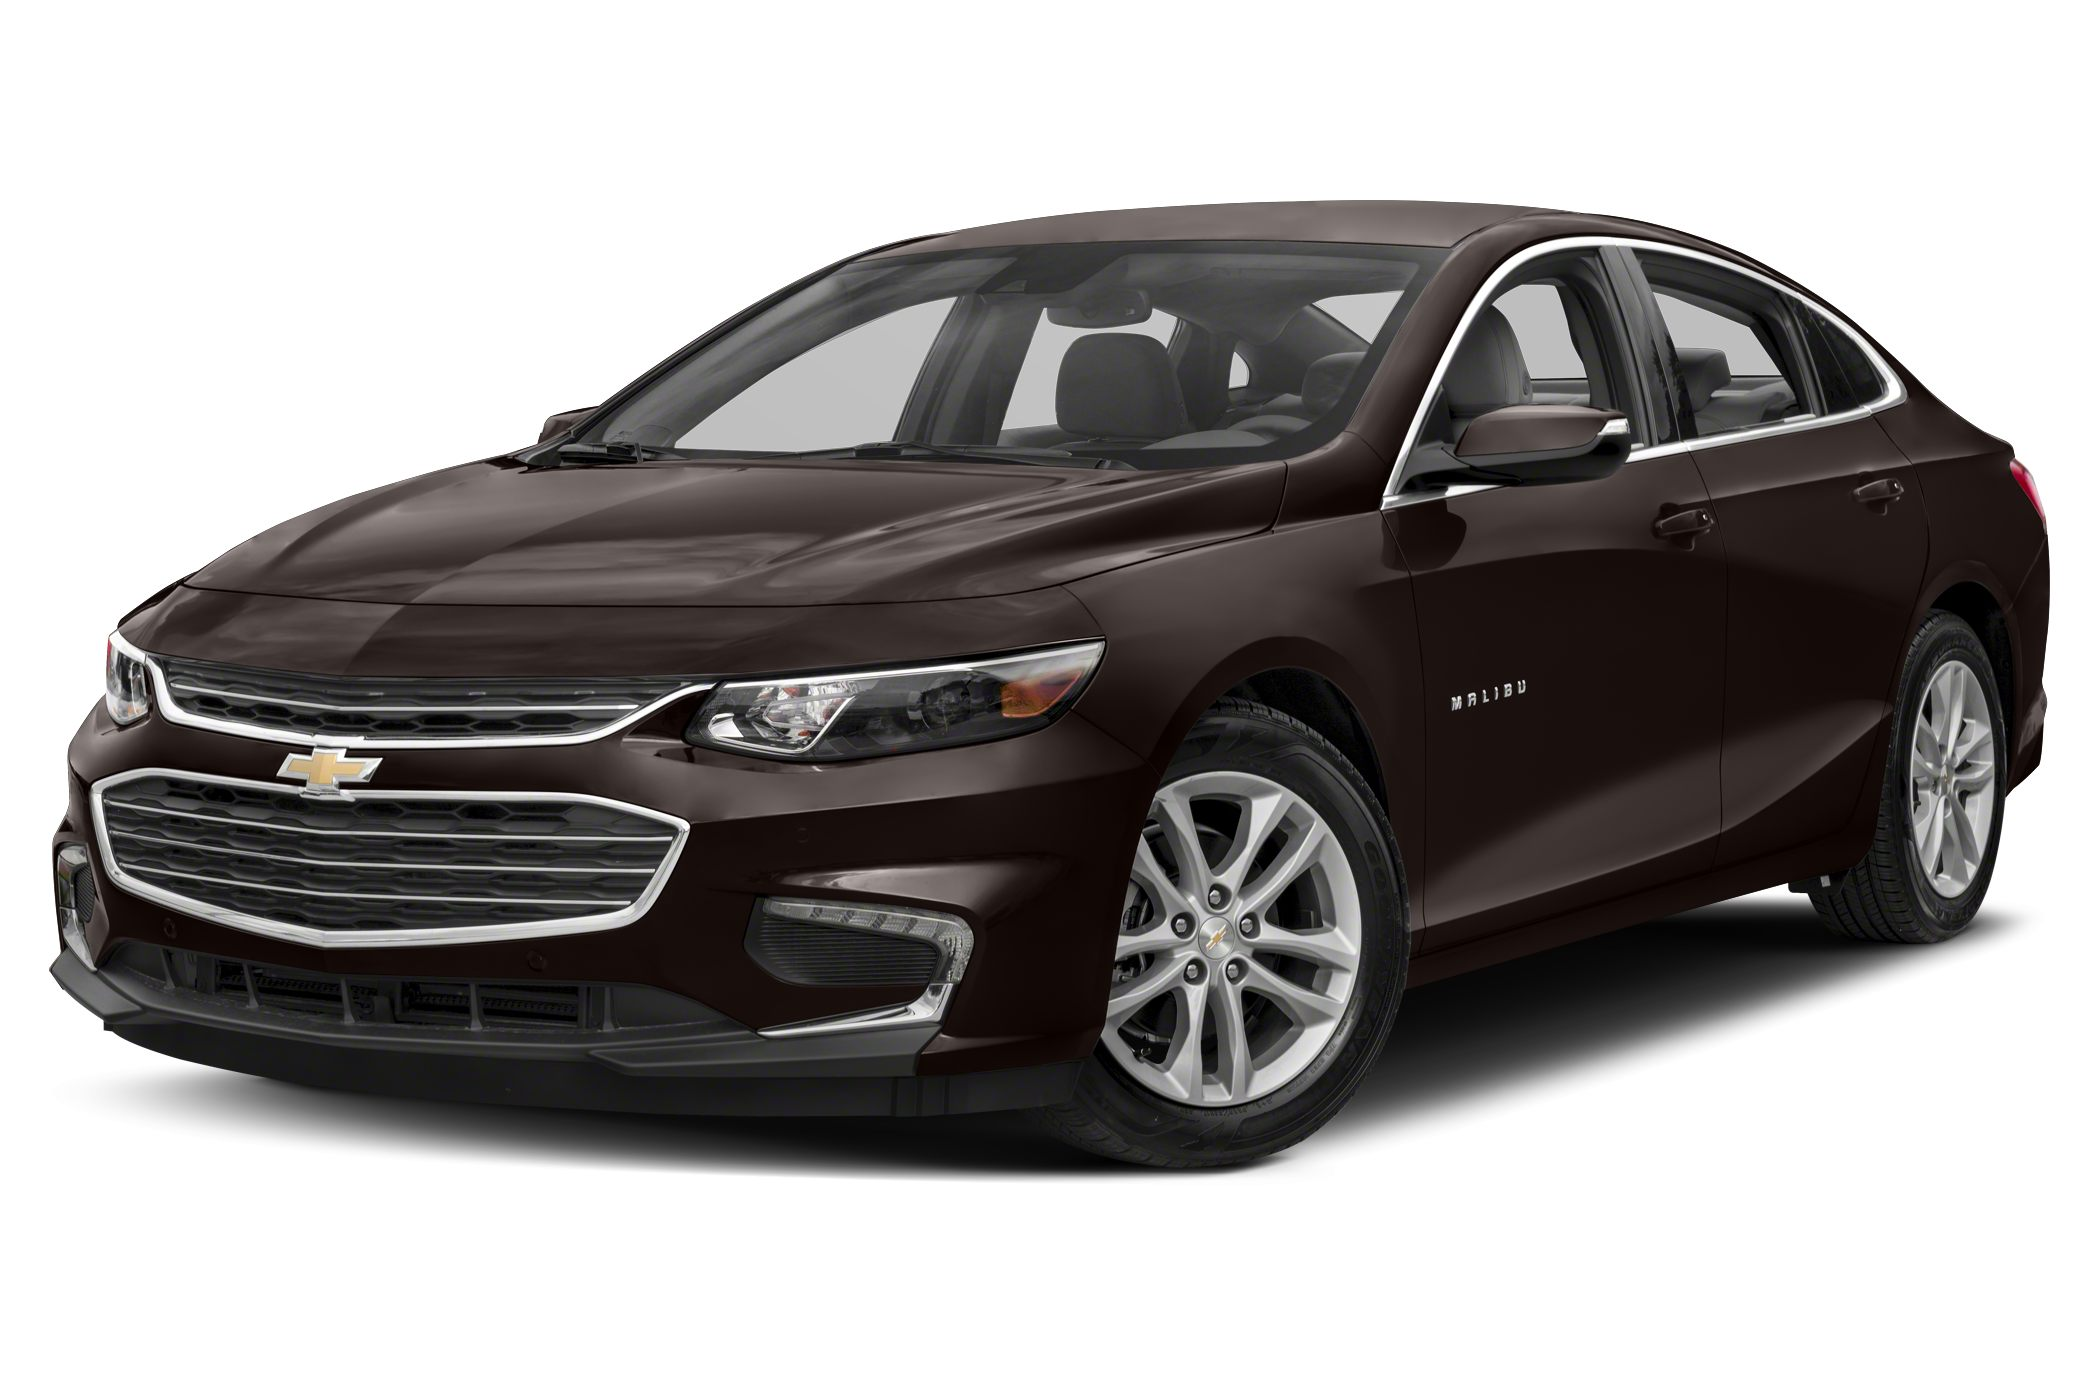 2016 Chevrolet Malibu Hybrid Pricing And Specs